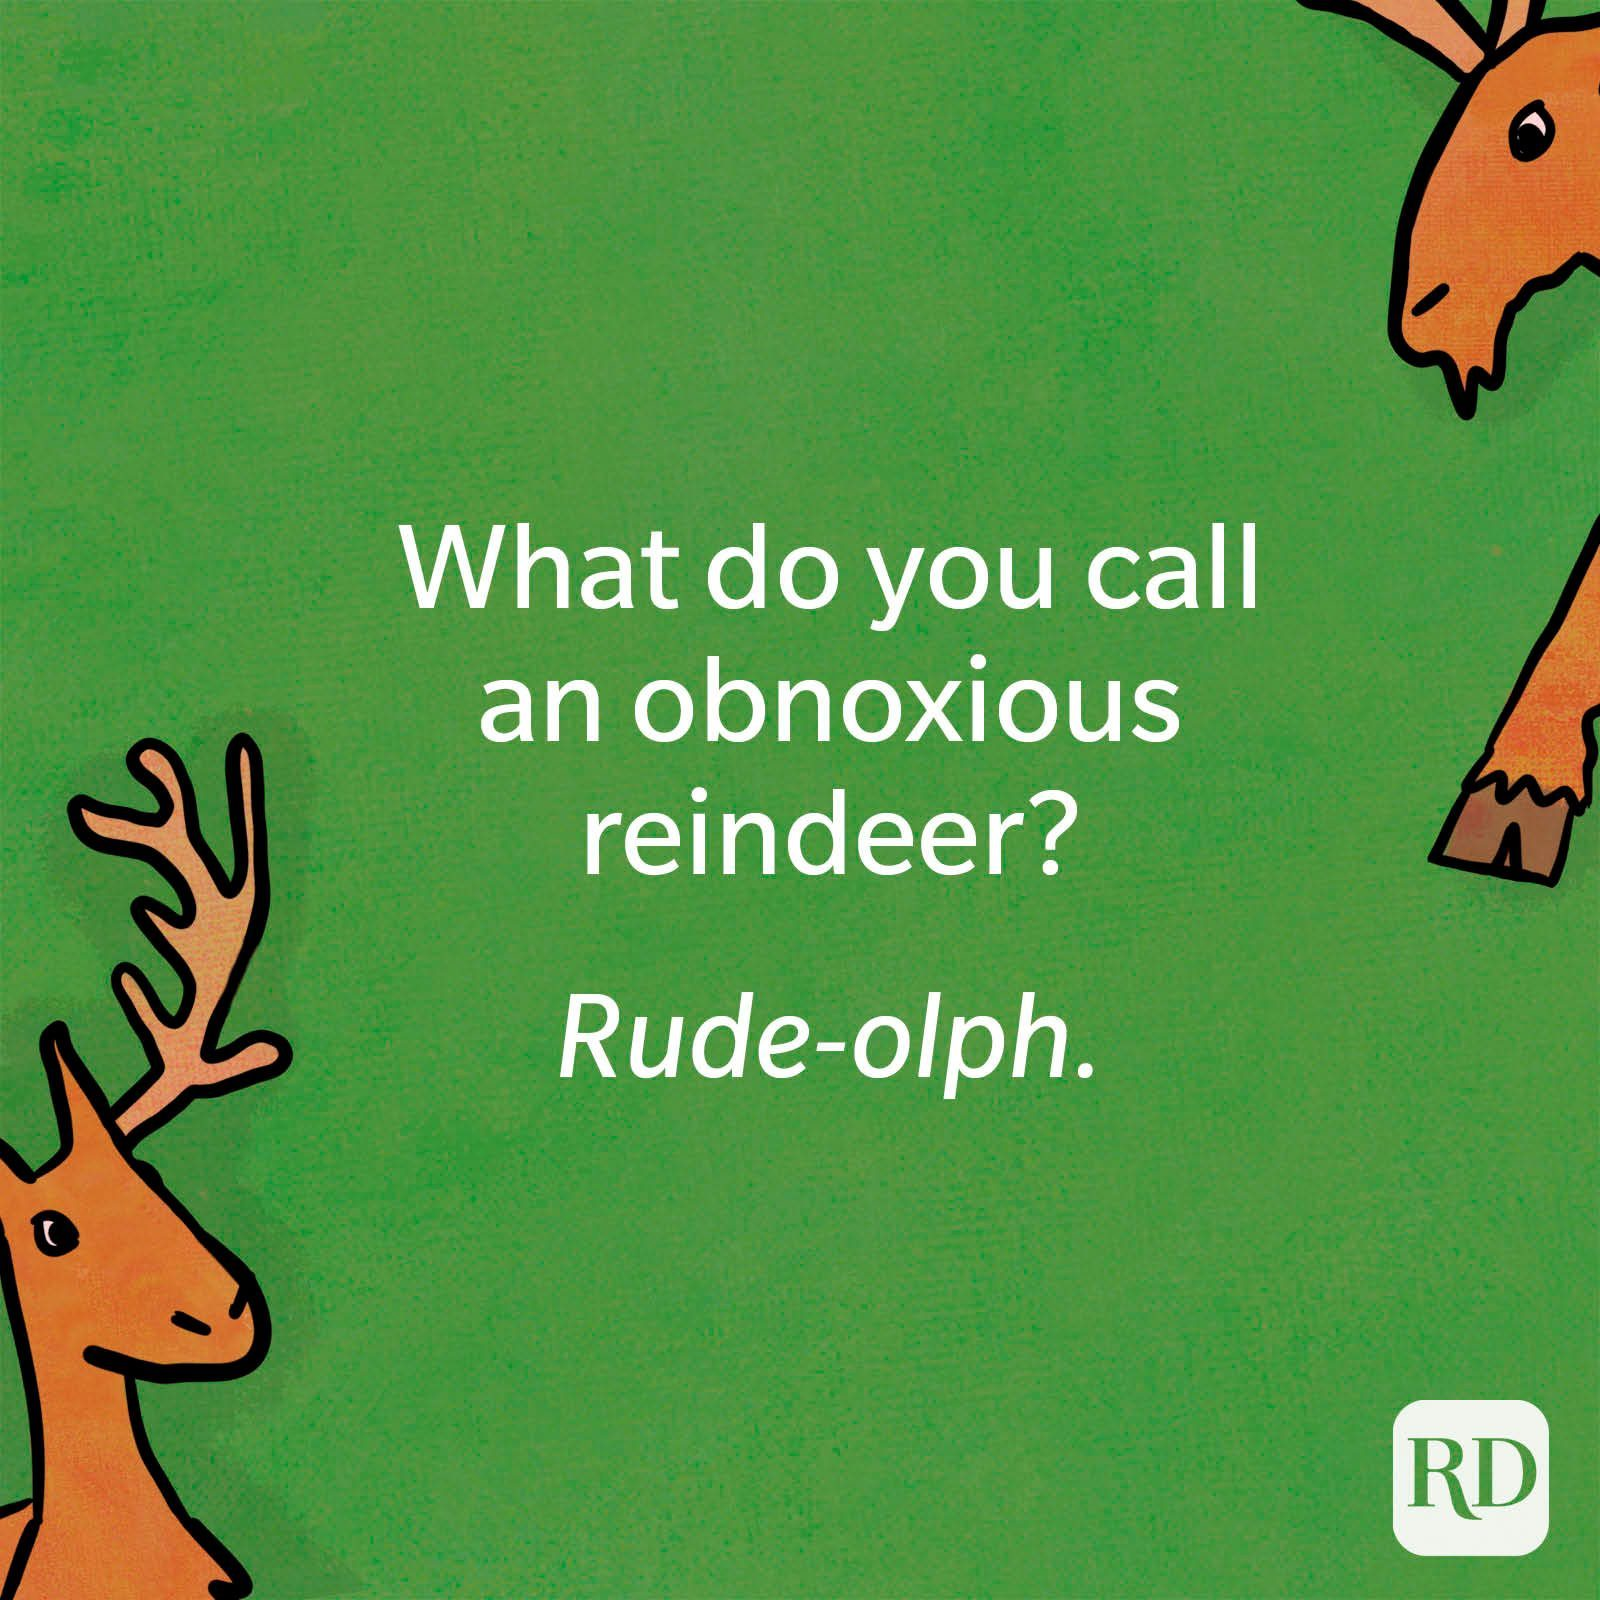 What do you call an obnoxious reindeer?